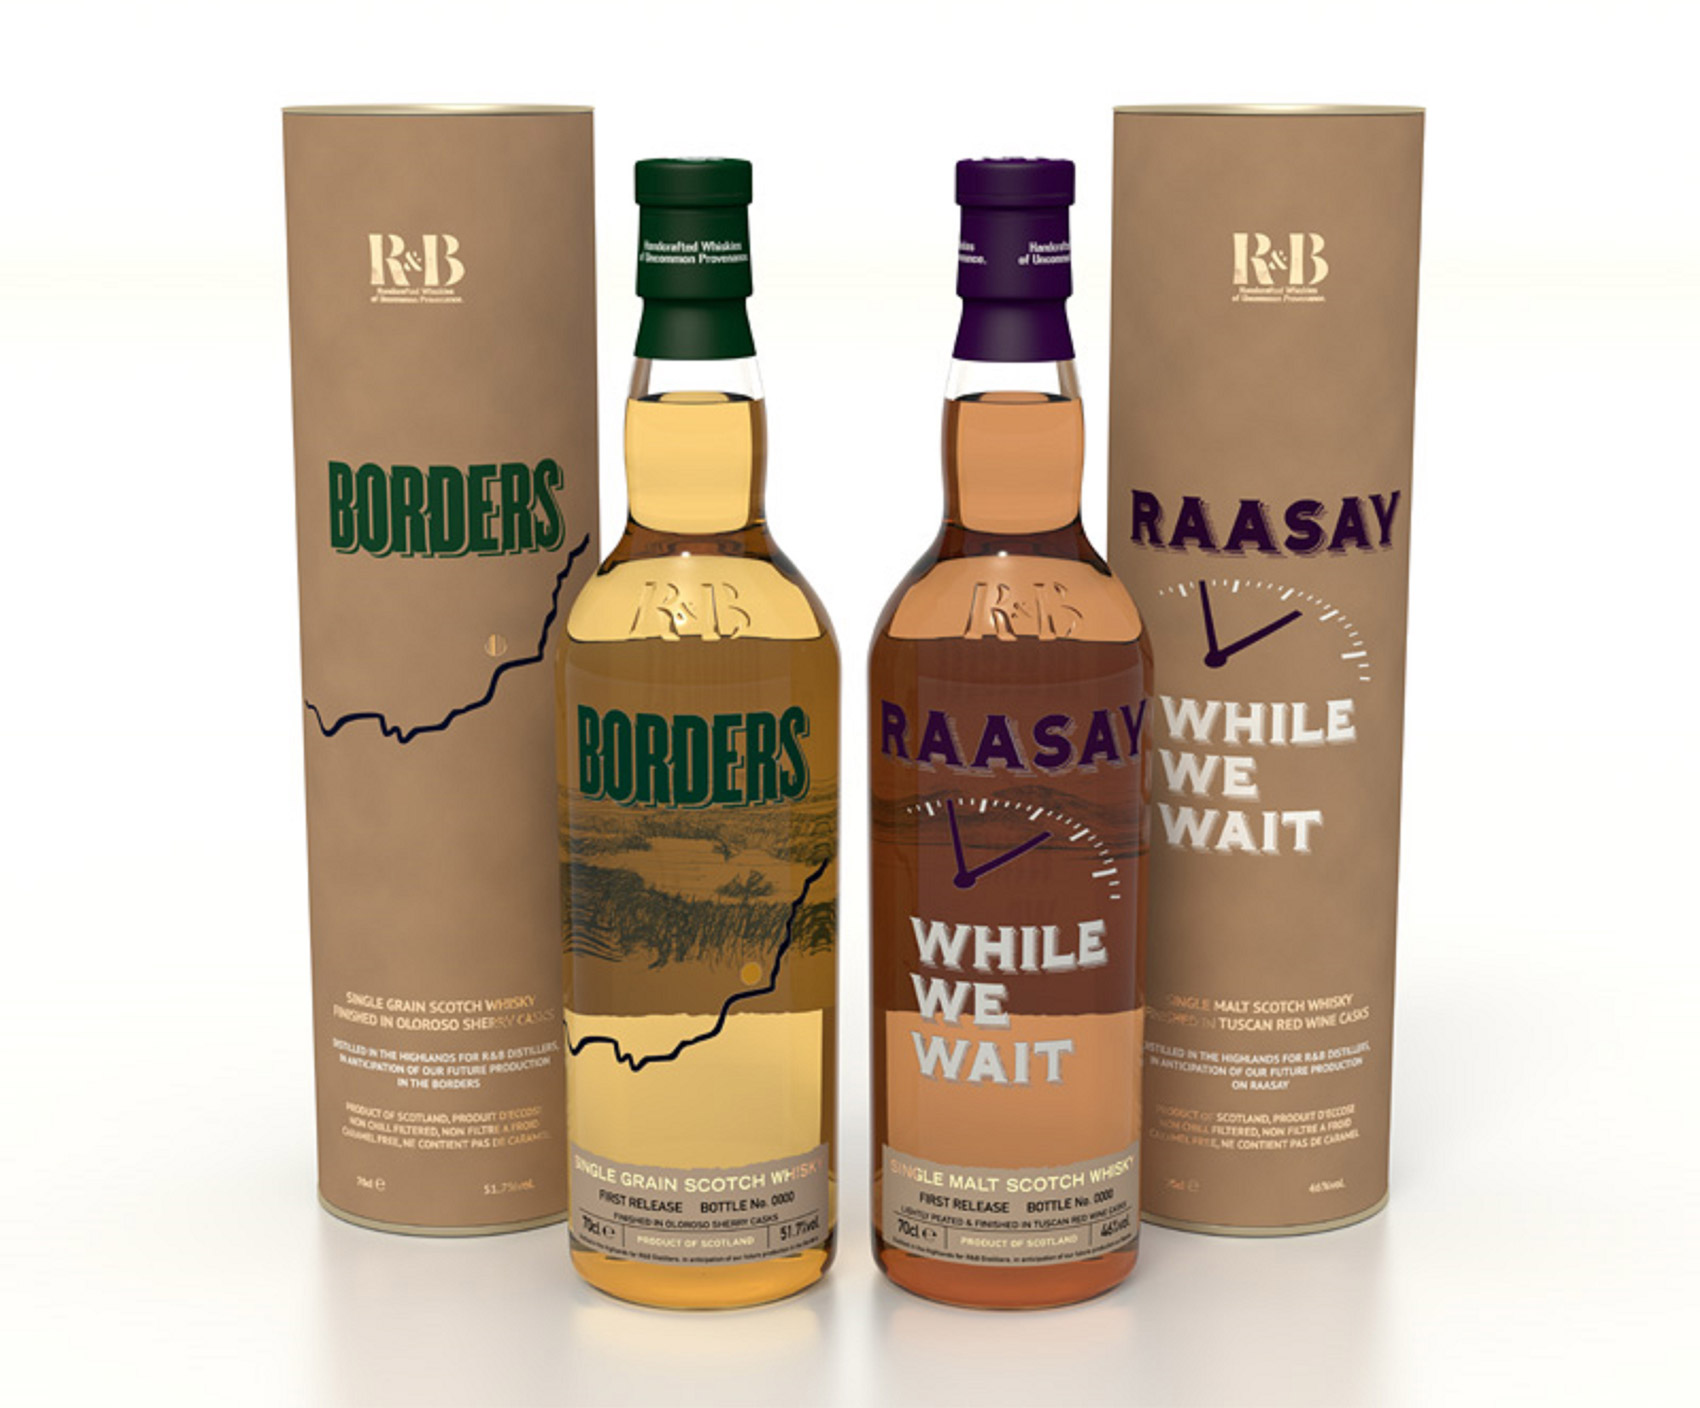 Time to Raise Your Glasses to Mark two Distinctive New Whiskies by R&B Distillers 5